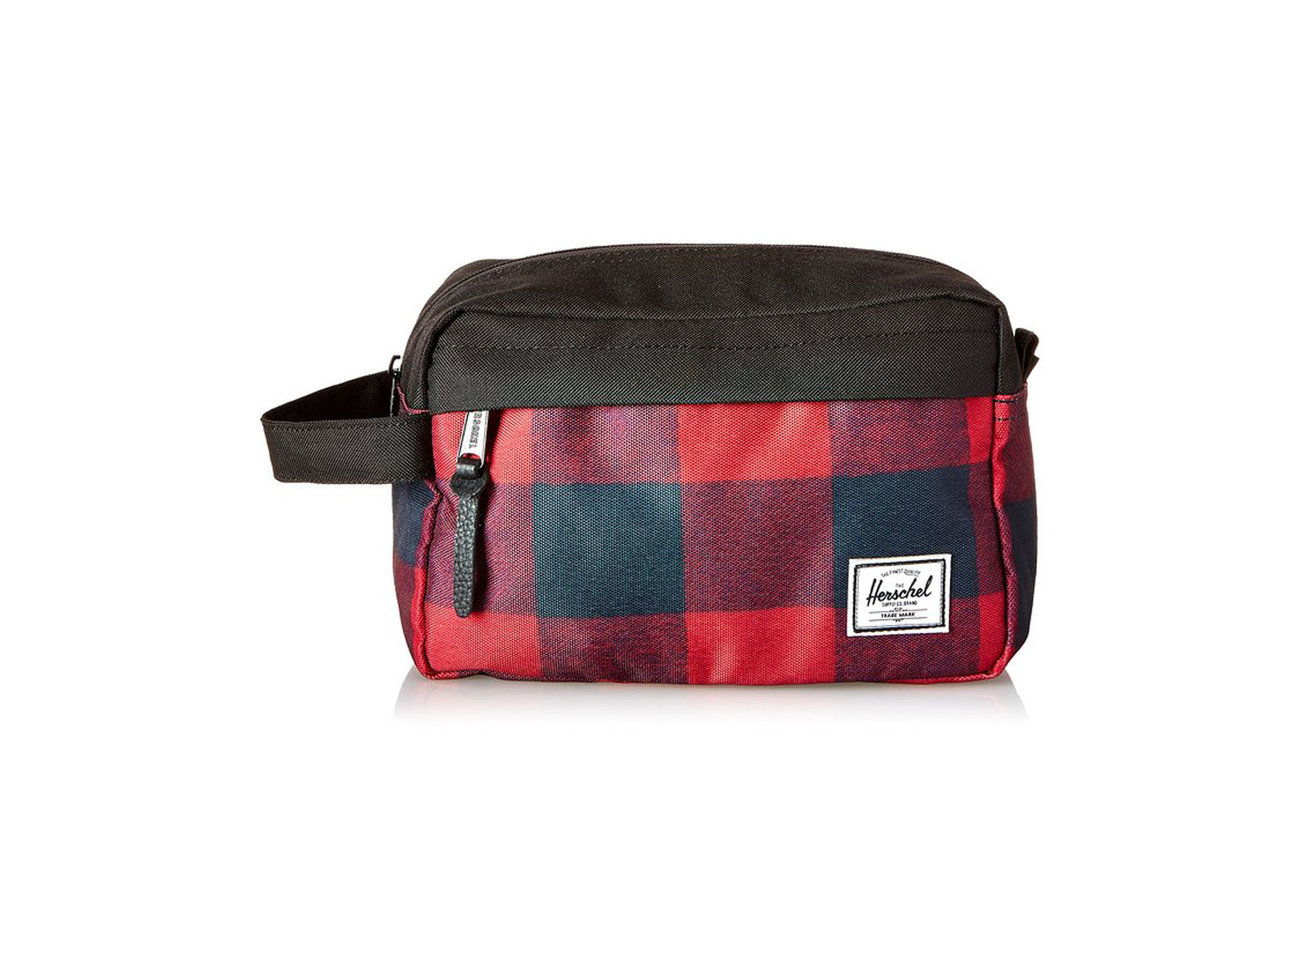 Herschel-Supply-Travel-Kit-amazon-prime-BESTSHOP1215.jpg